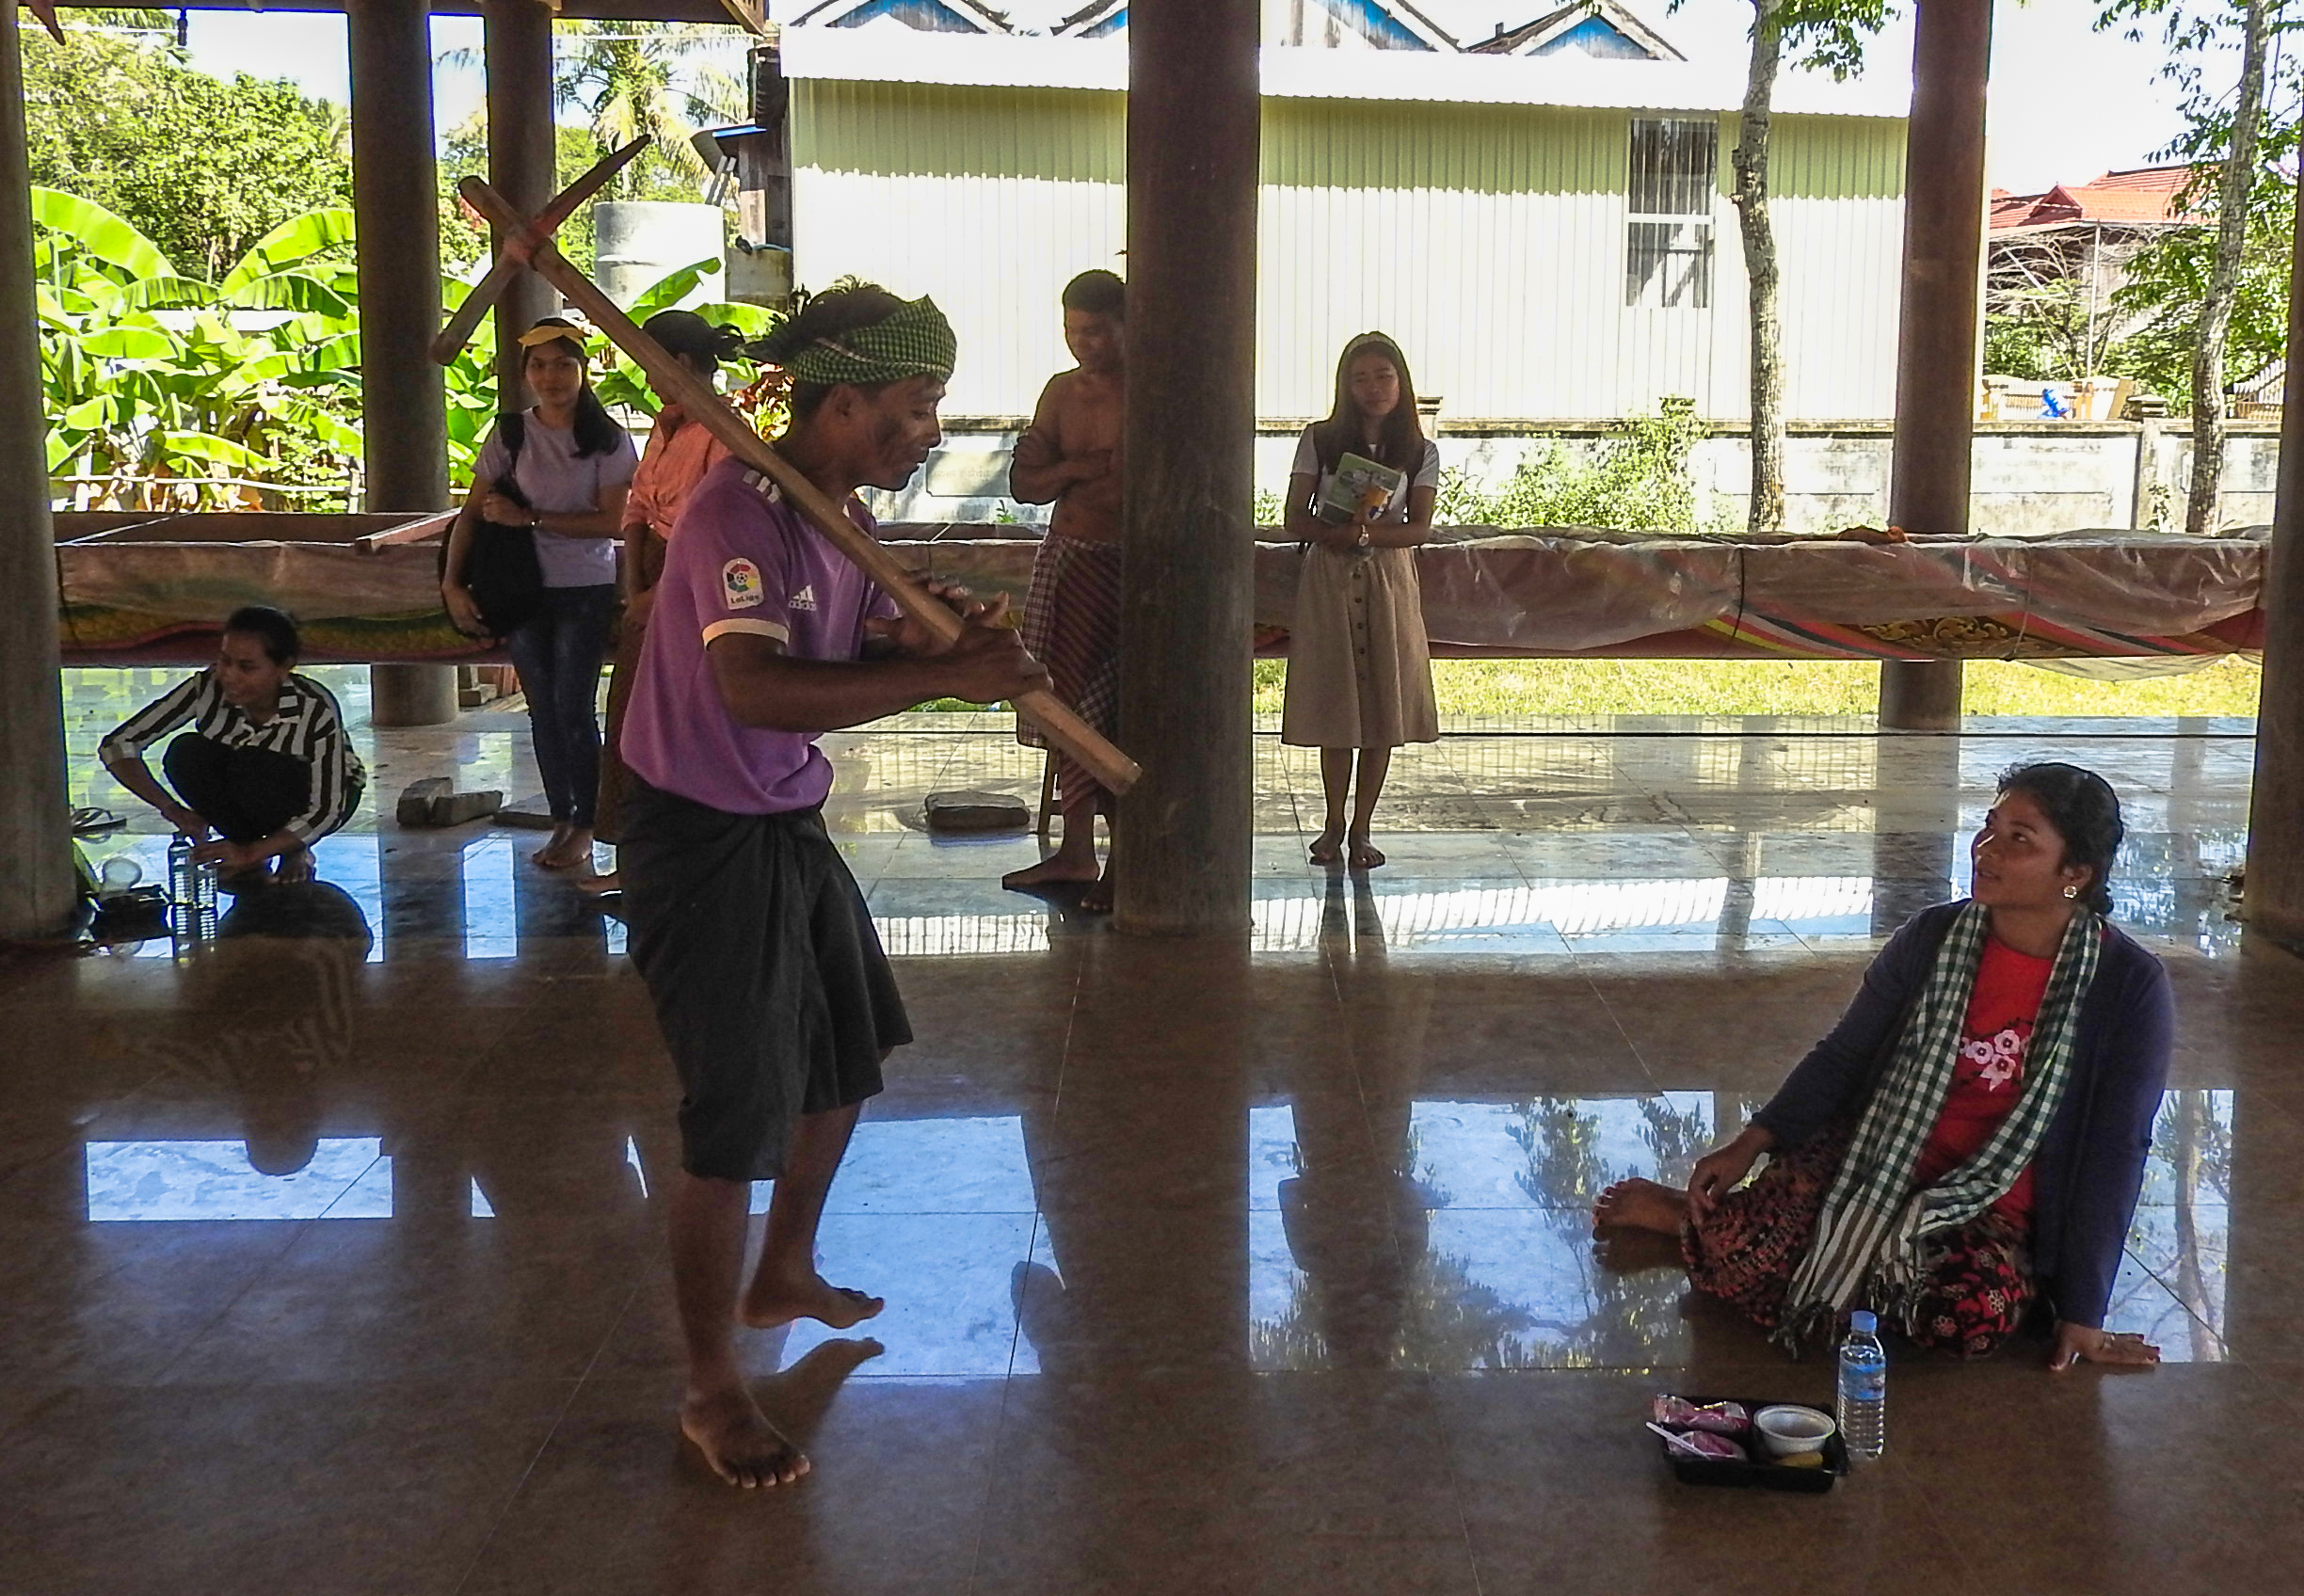 Jokers and youth from Sambo district perform a story of illegal fishing that very often happens in the Mekong River.